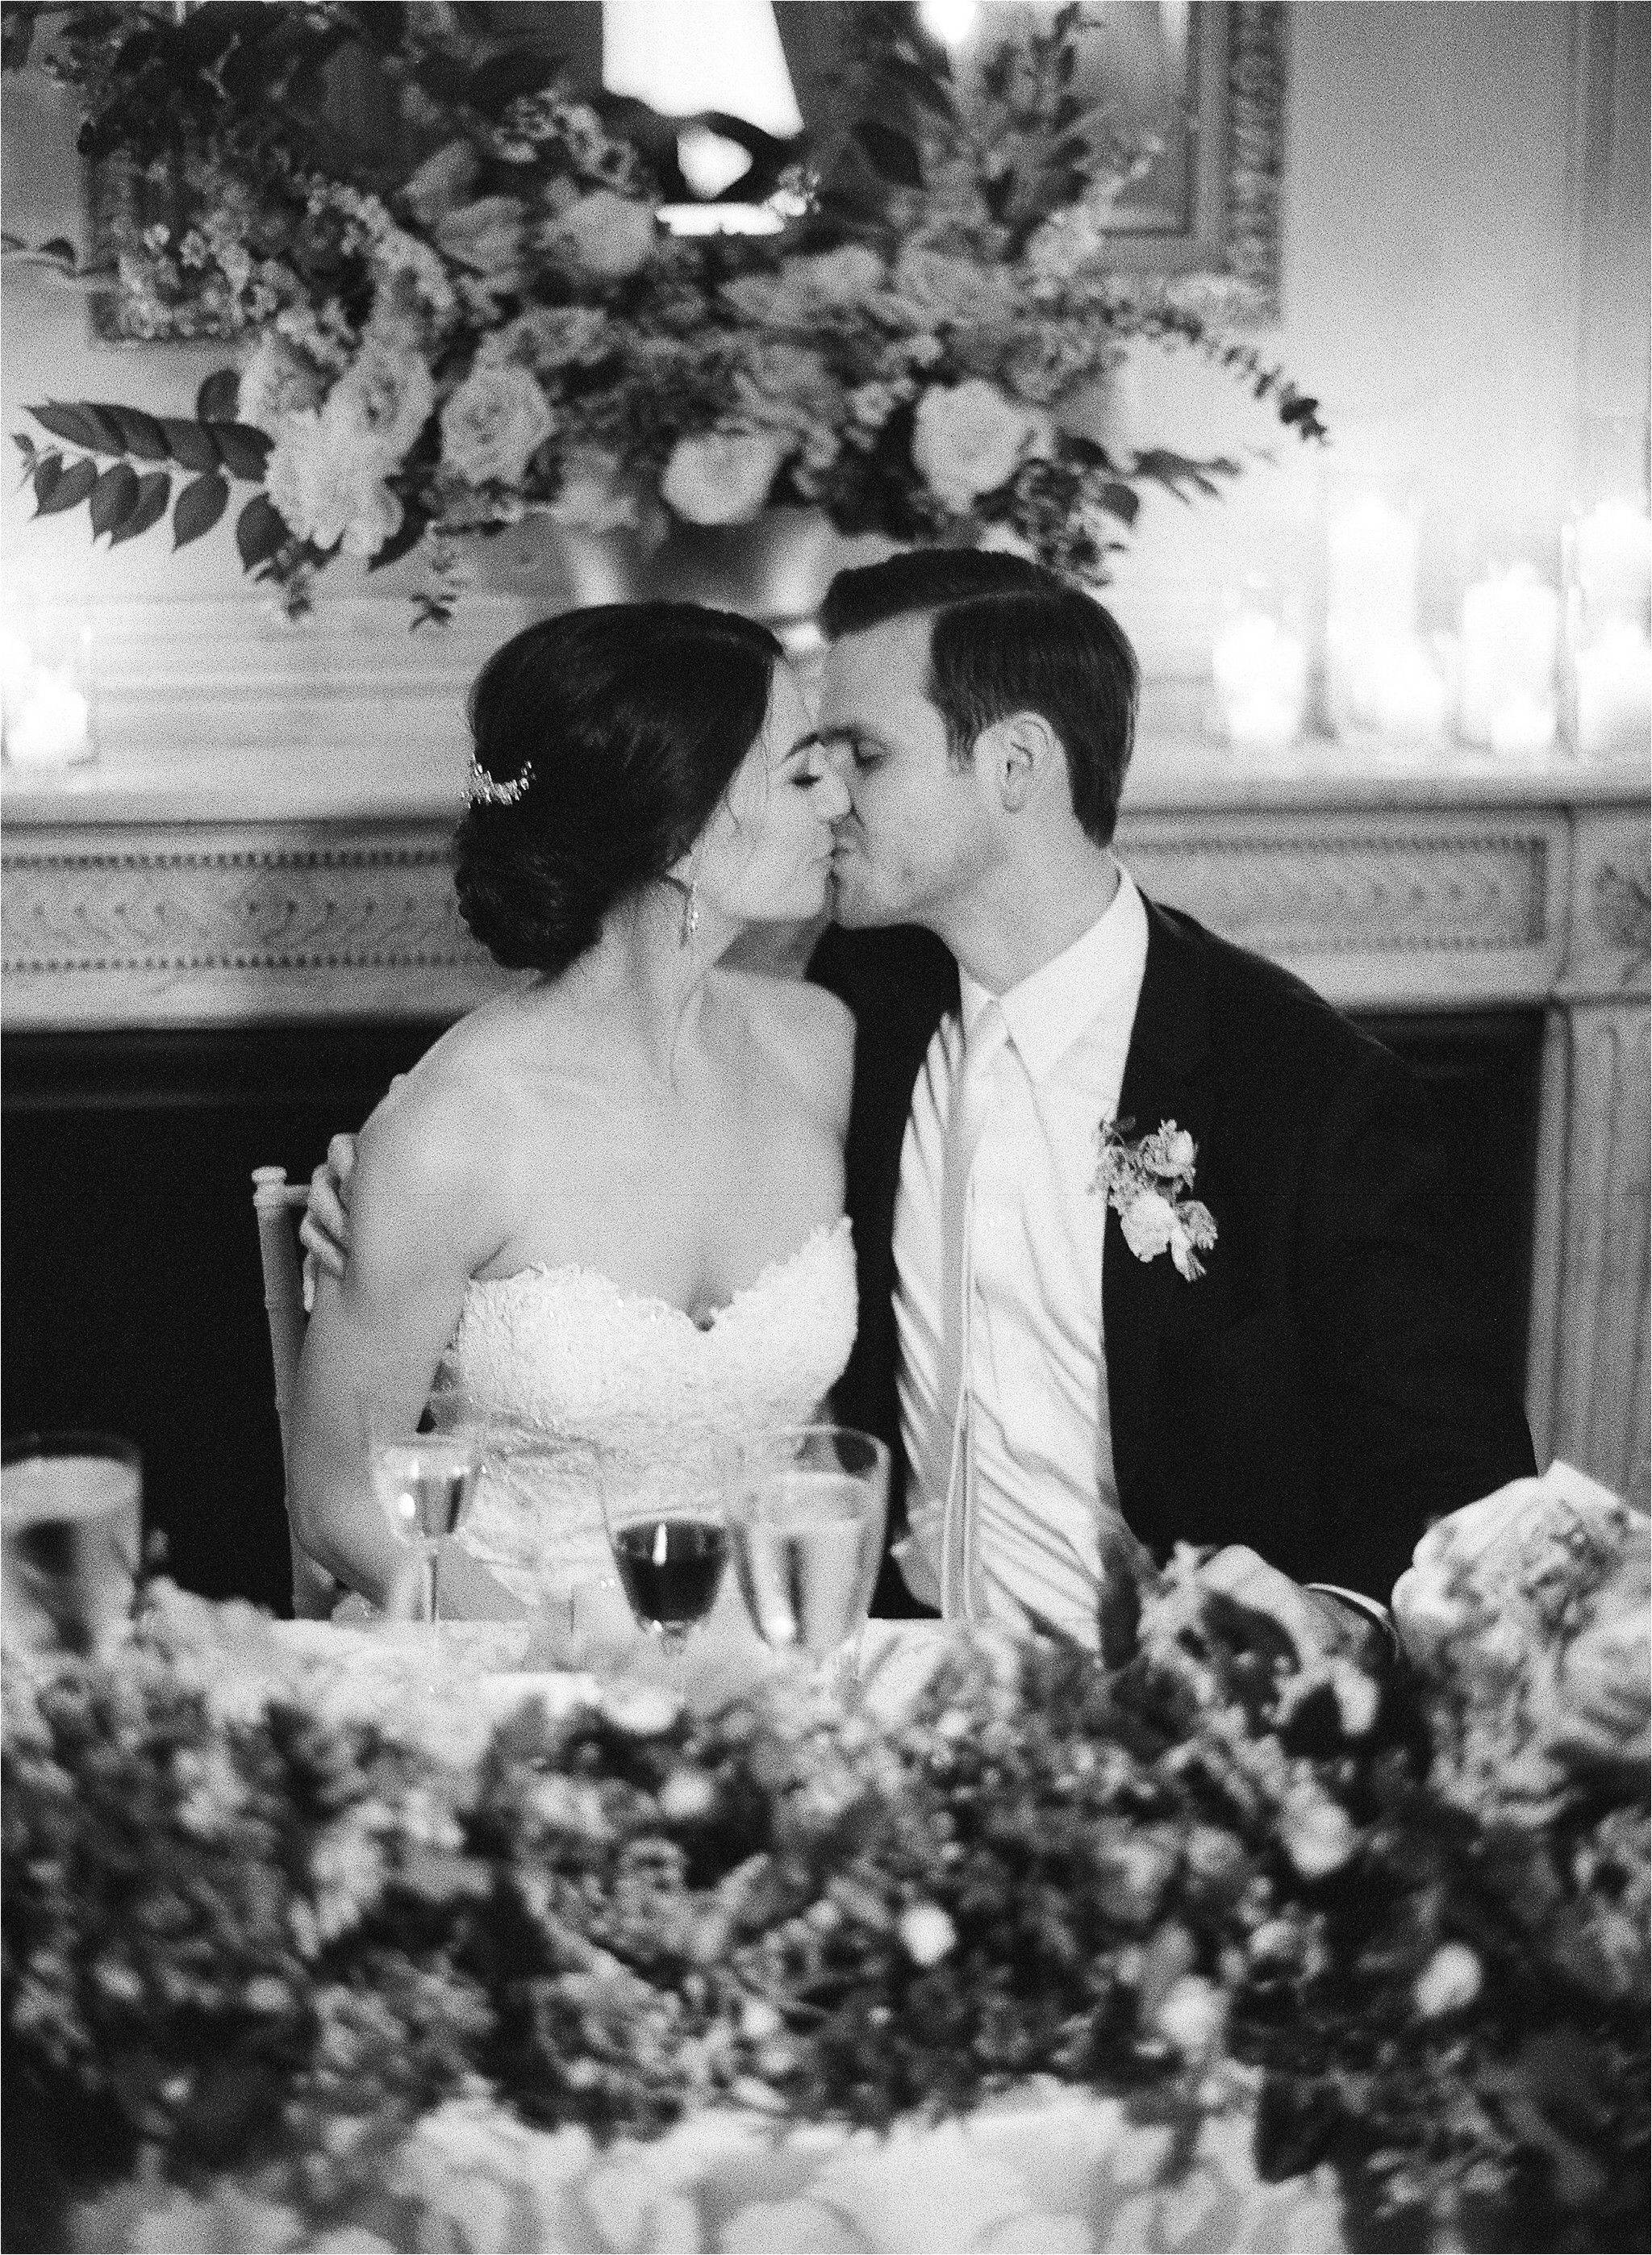 Timeless and romantic black and white photography of bride and groom kissing at the wedding table